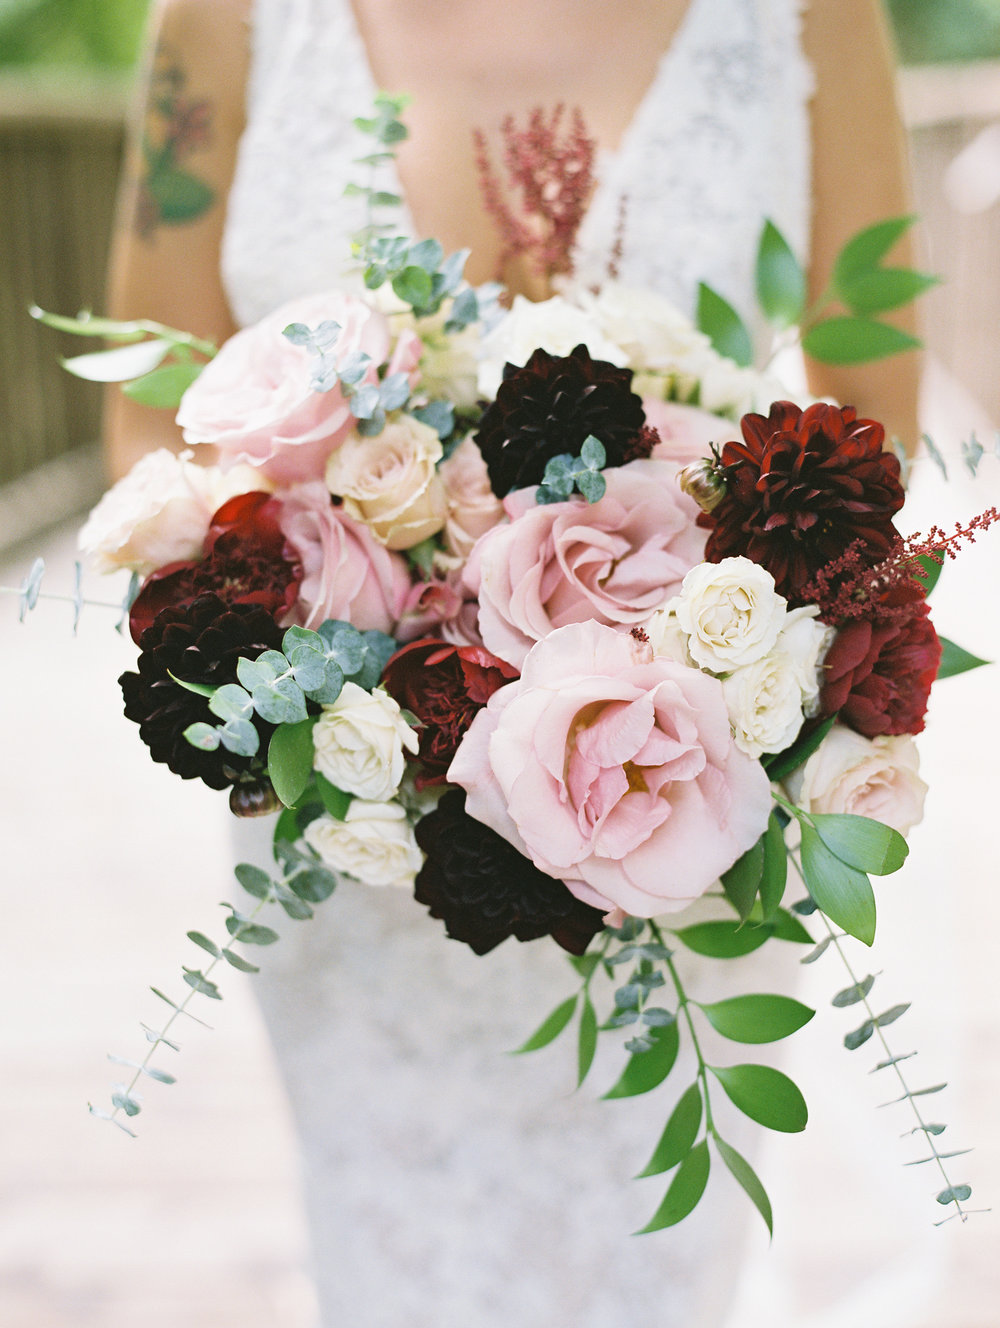 blush and burgandy bouquet with dahlias and roses.jpg